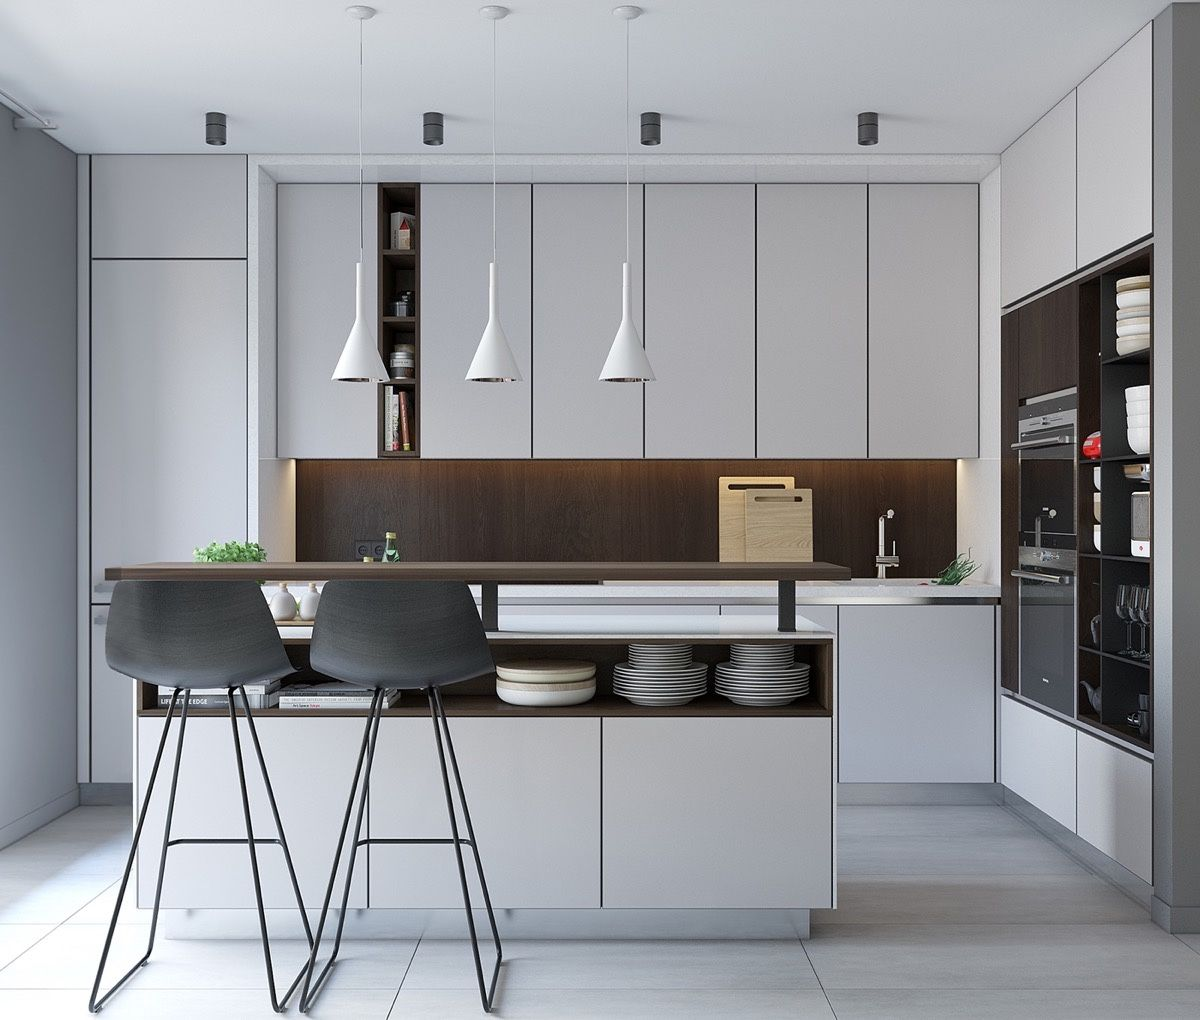 40 Minimalist Kitchens To Get Super Sleek Inspiration Kitchen